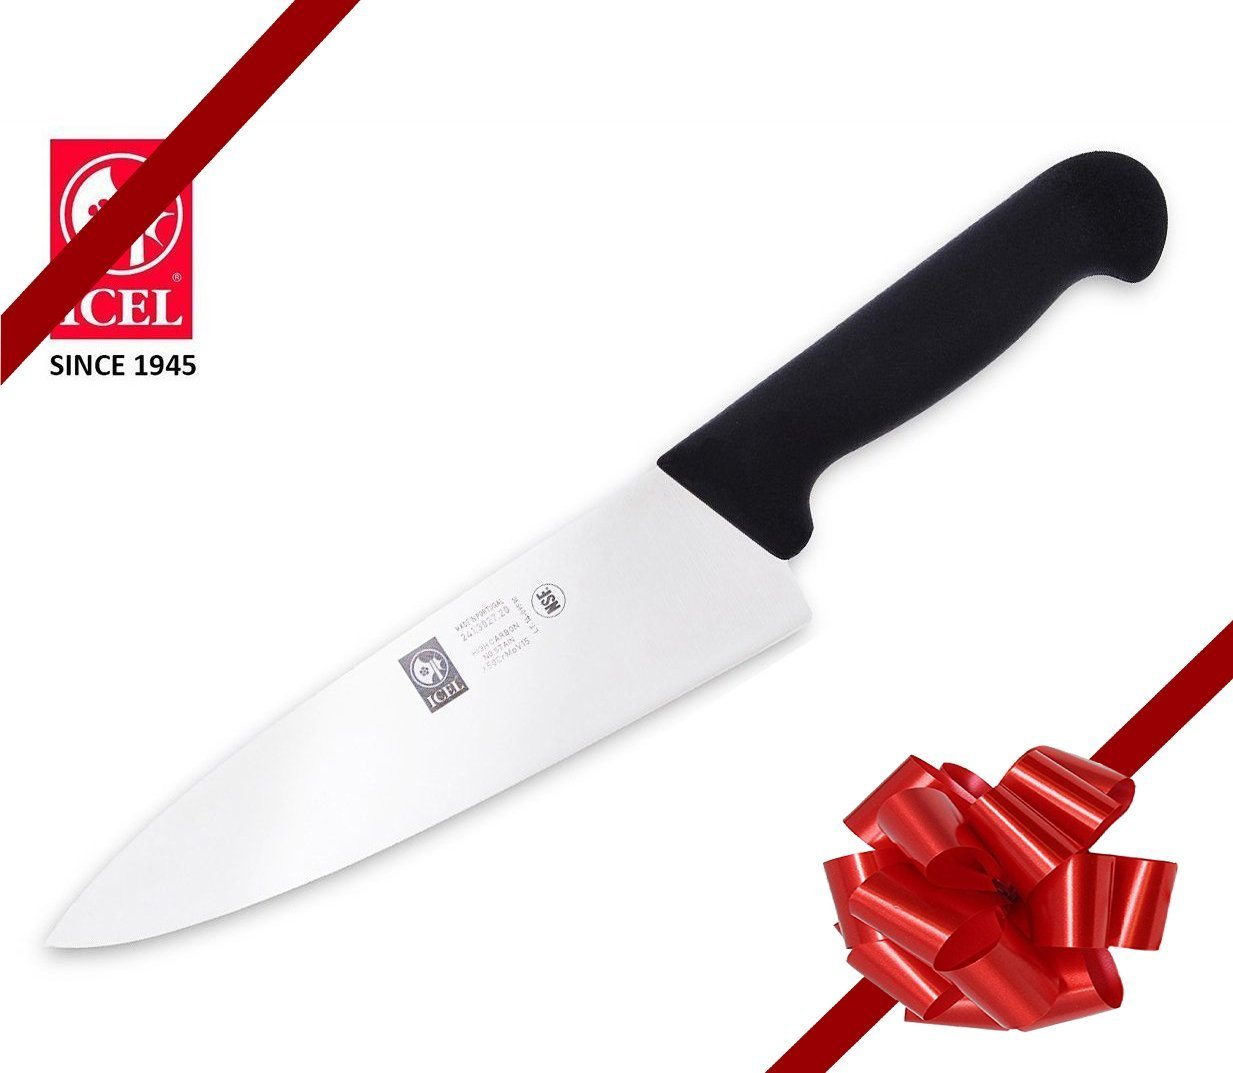 ICEL Chef knife Cutlery 8-inch Chefs Knife.(Knife Care, Sharpening Instructions Included) Great for chopping, mincing and dicing